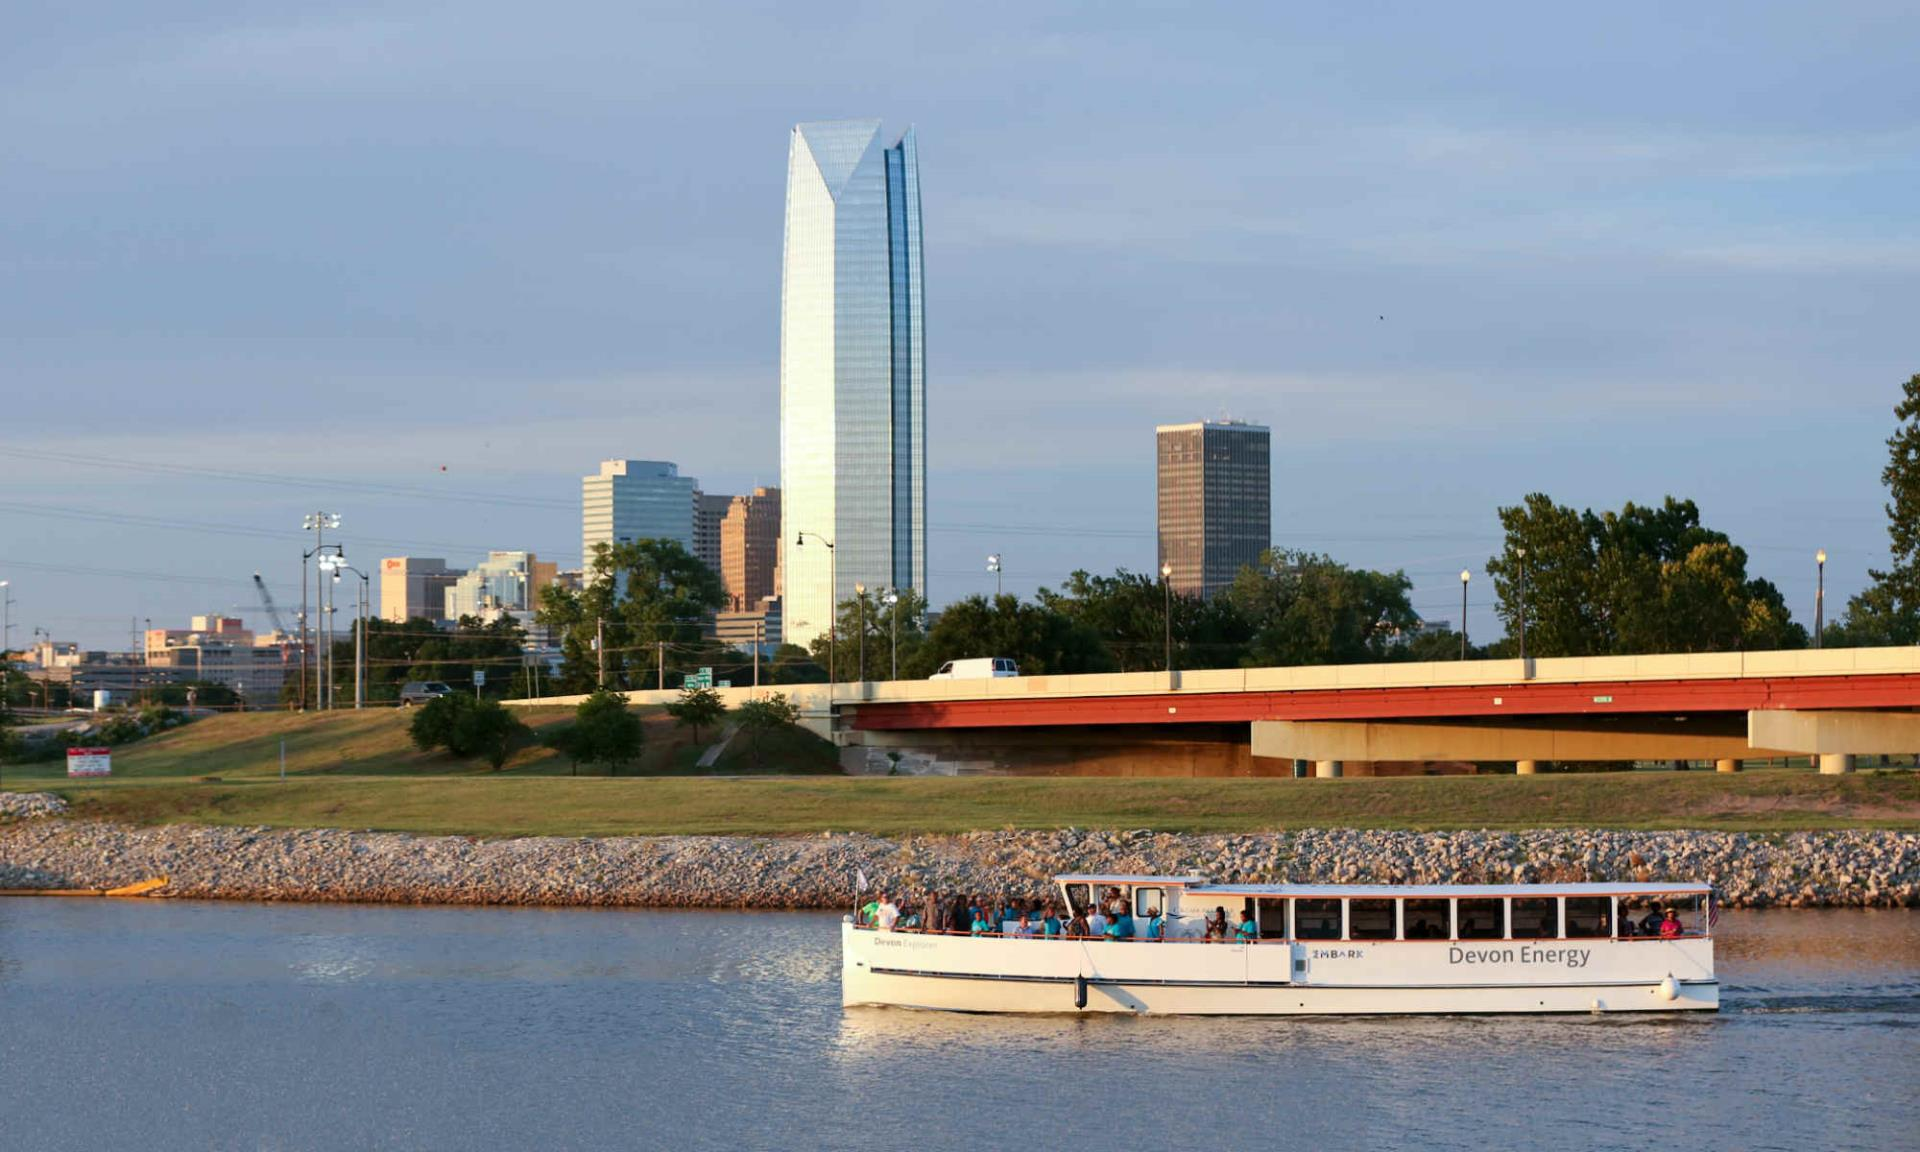 Downtown OKC and one of the Oklahoma River Boats